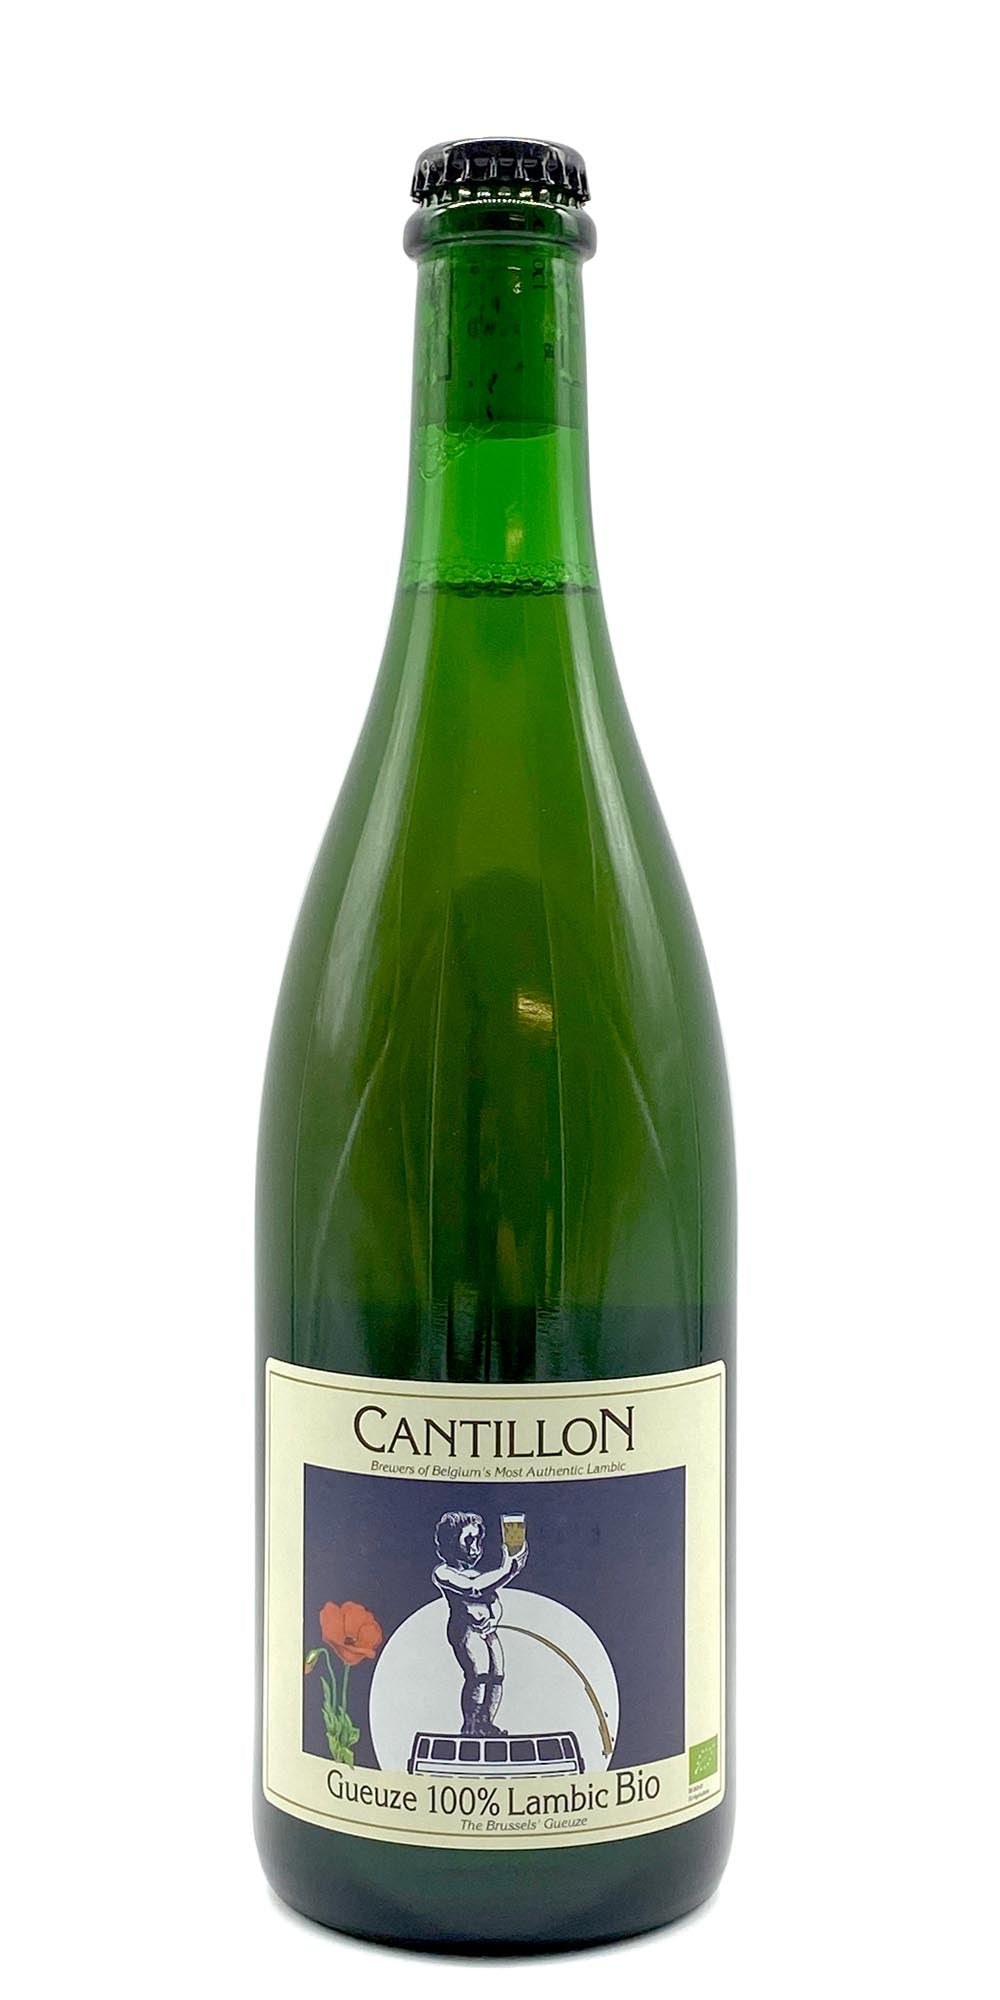 Cantillon - Gueuze 2019 - 750ml - Drikbeer - Order Craft Beer Online